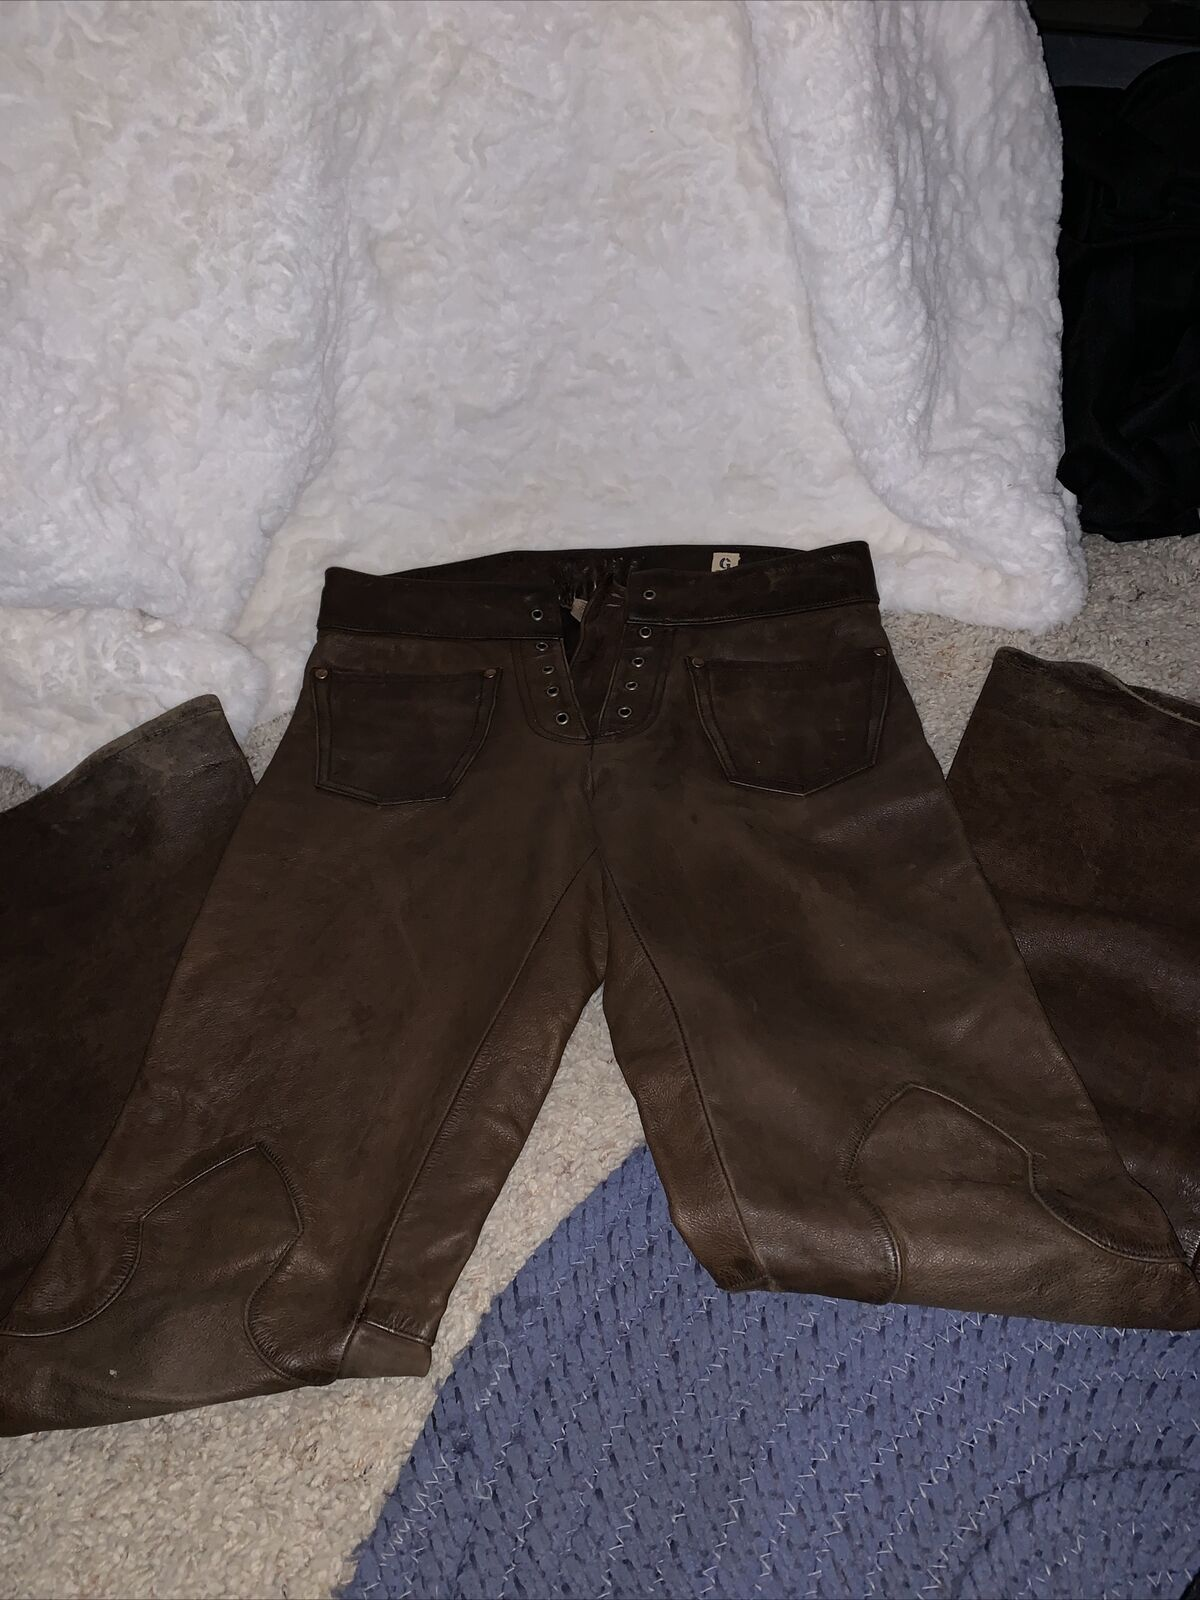 G Brand Leather Brown Pants Size 28 Lace-up Closure Silky Lining